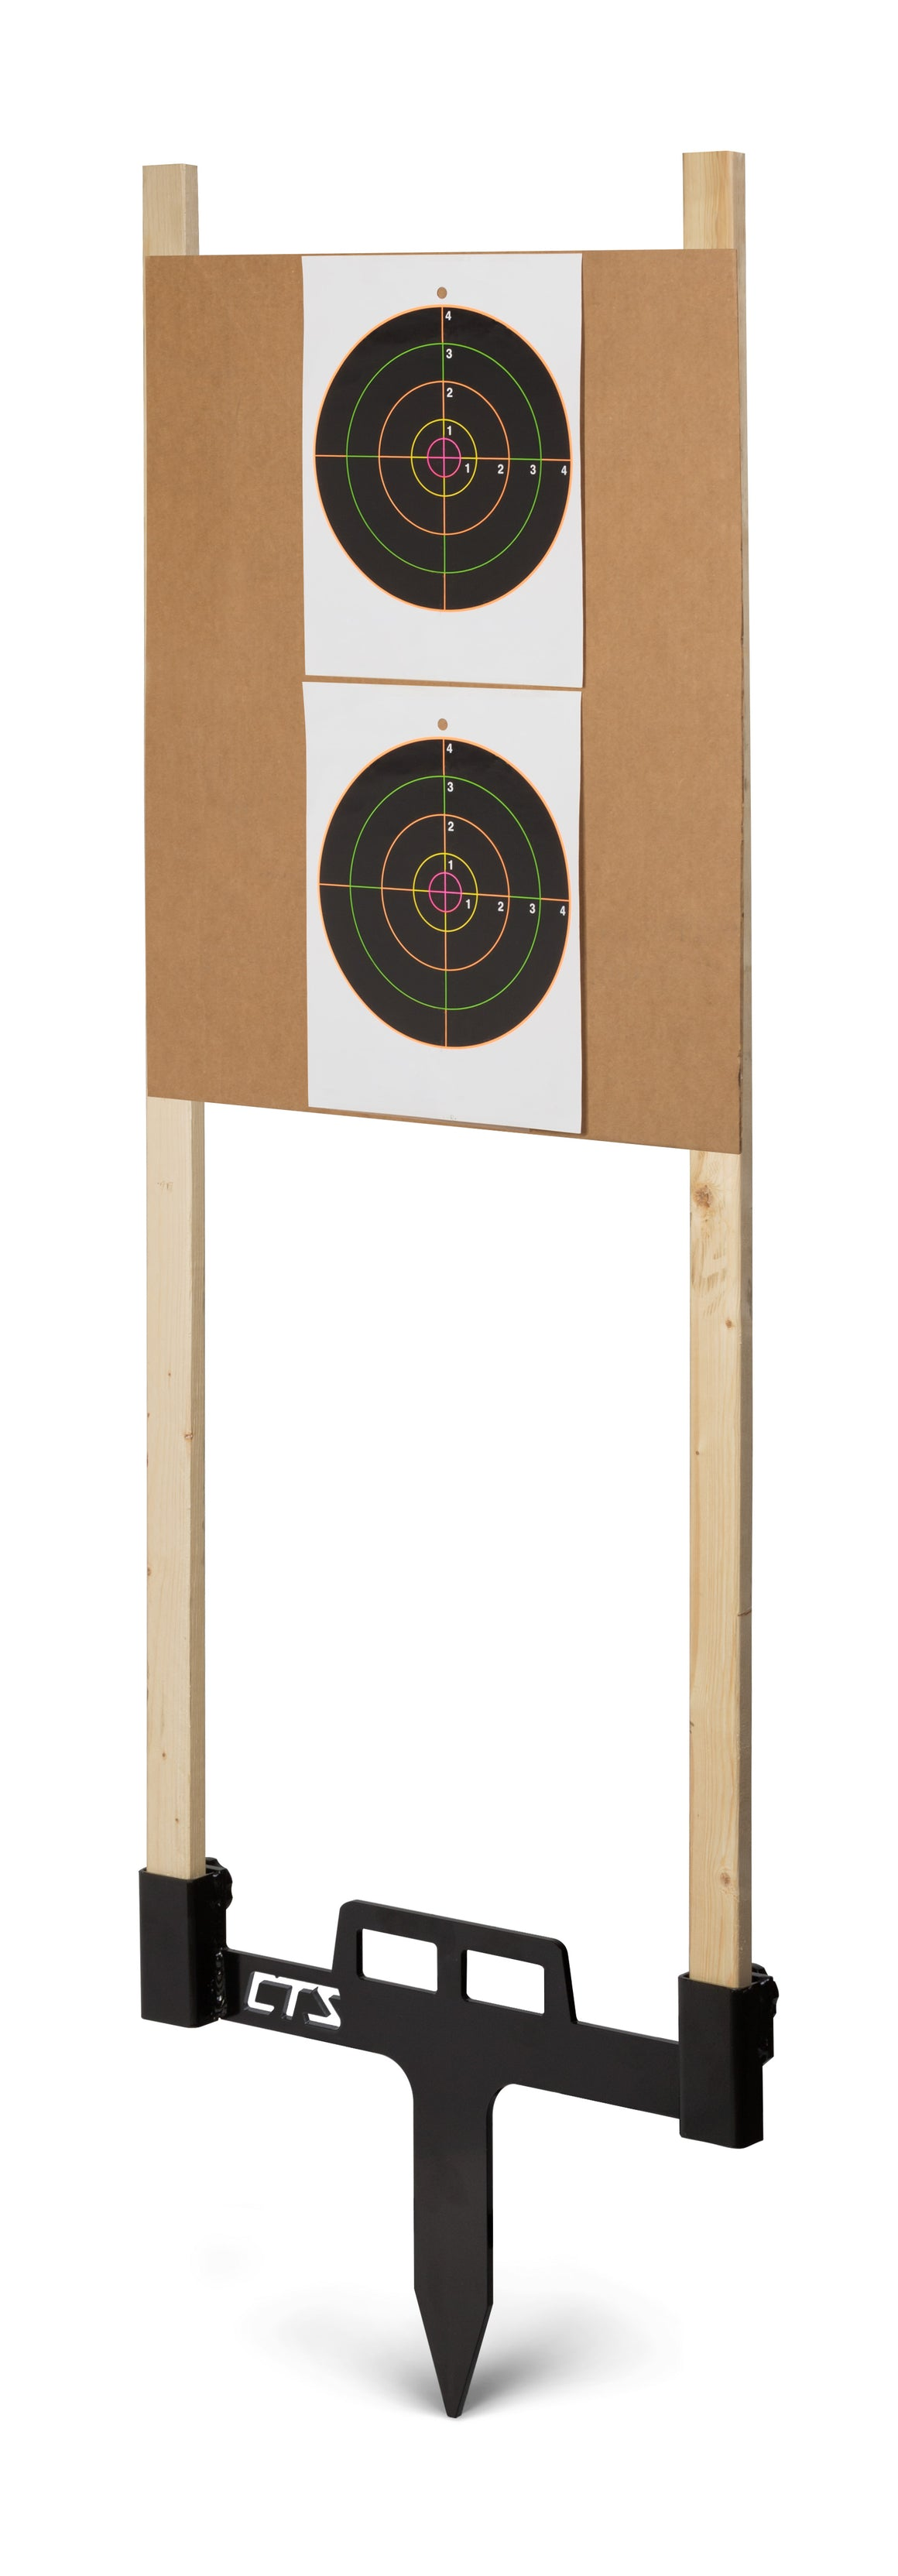 "18"" Cardboard Target Stand"